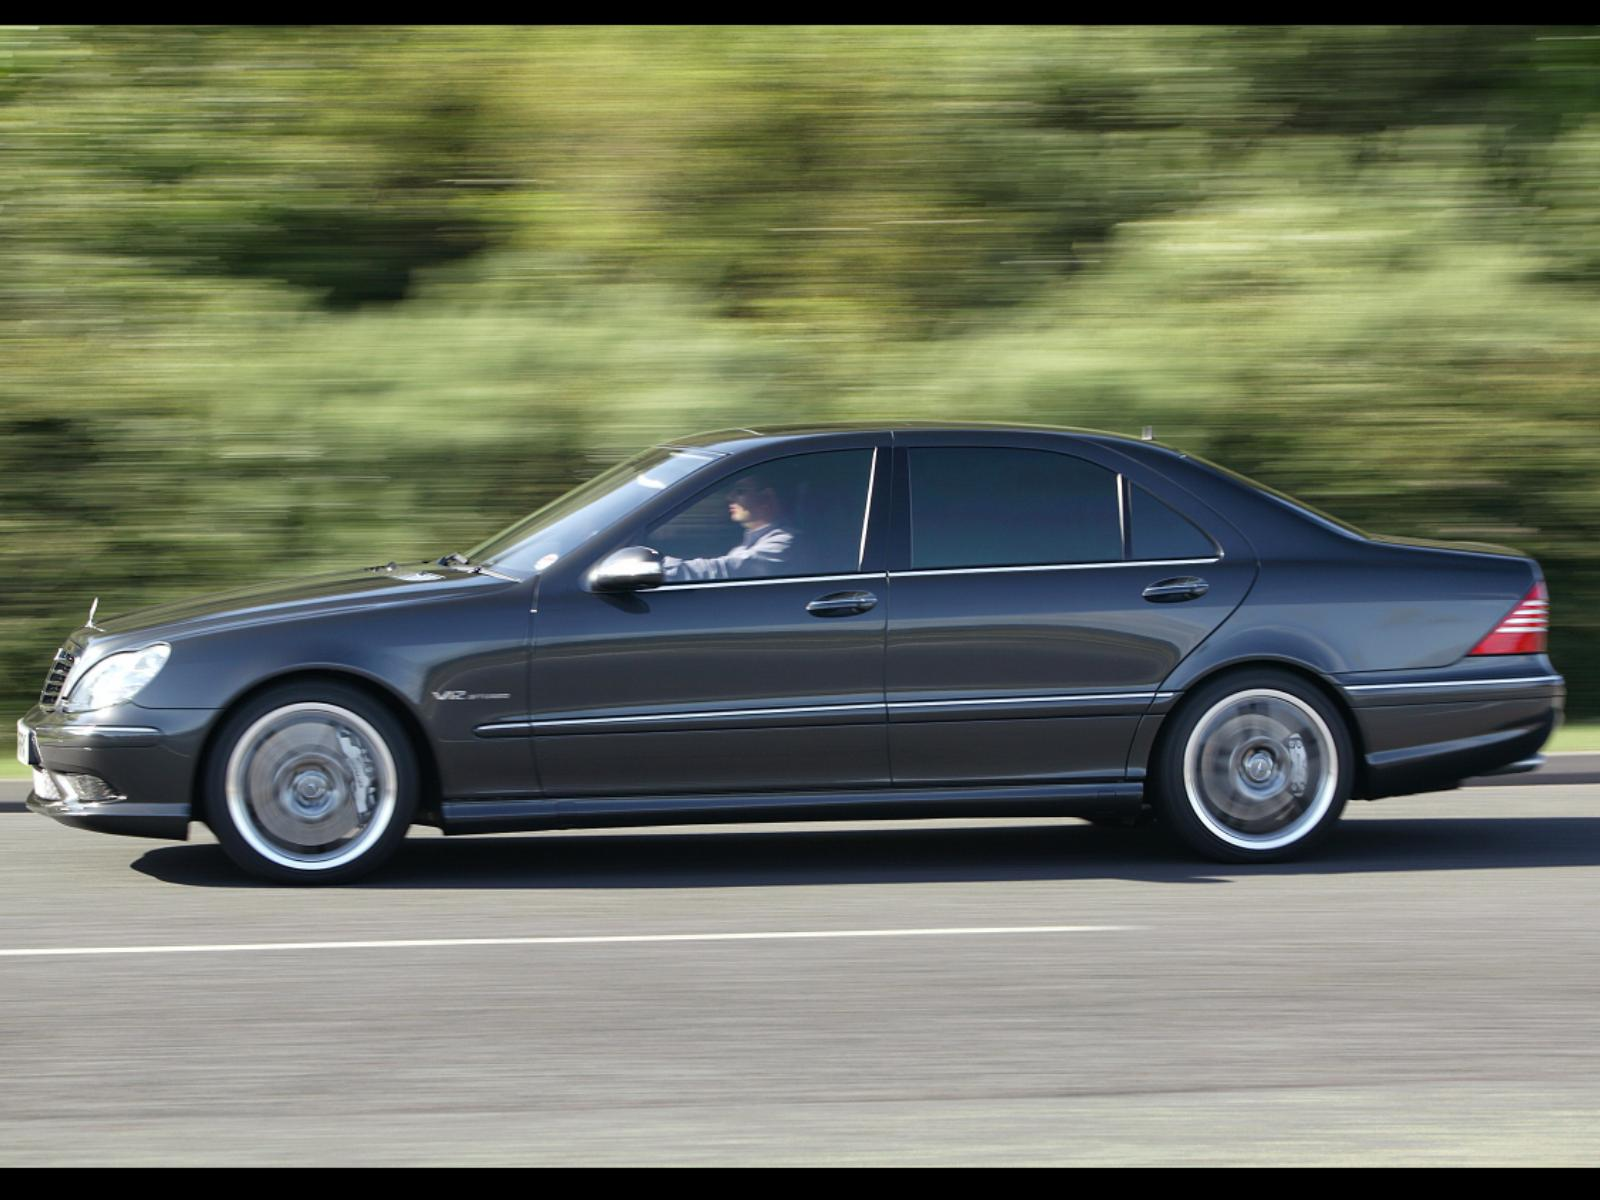 2012 mercedes benz s class amg pictures to pin on. Black Bedroom Furniture Sets. Home Design Ideas